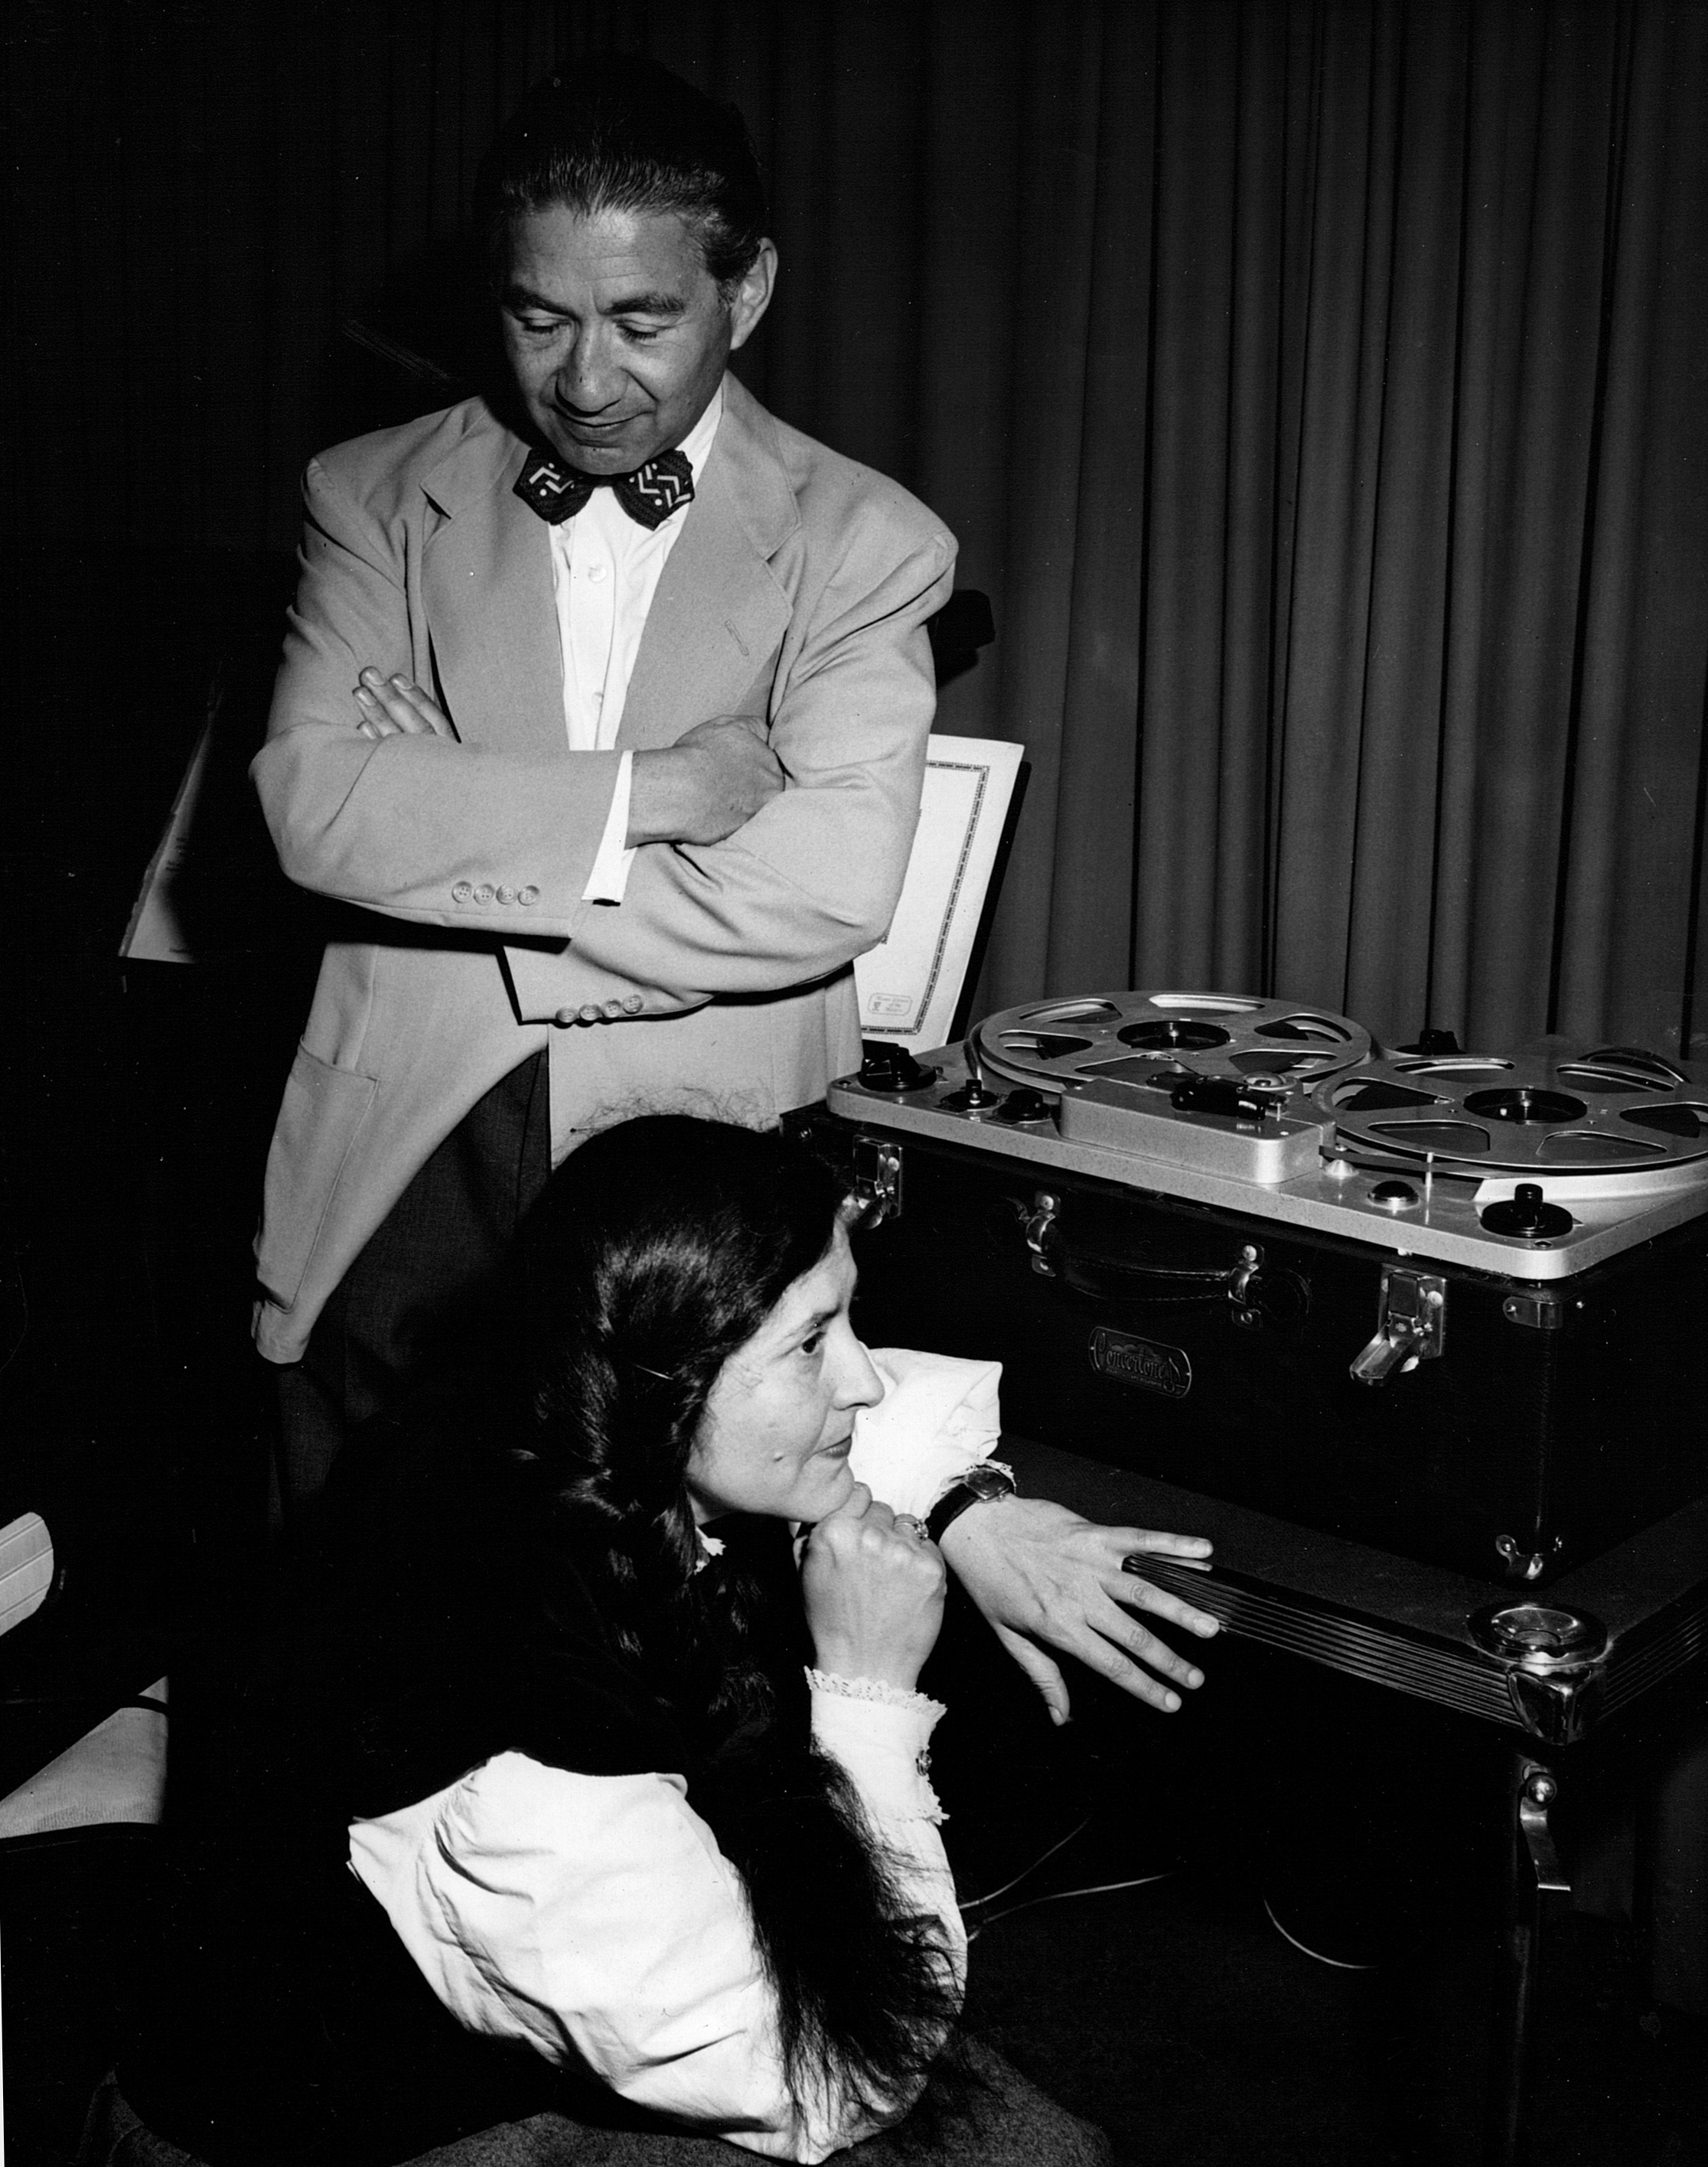 Henri Temianka and Lili Krauss audition a recording of their Beethoven sonata performance, ca. 1947.